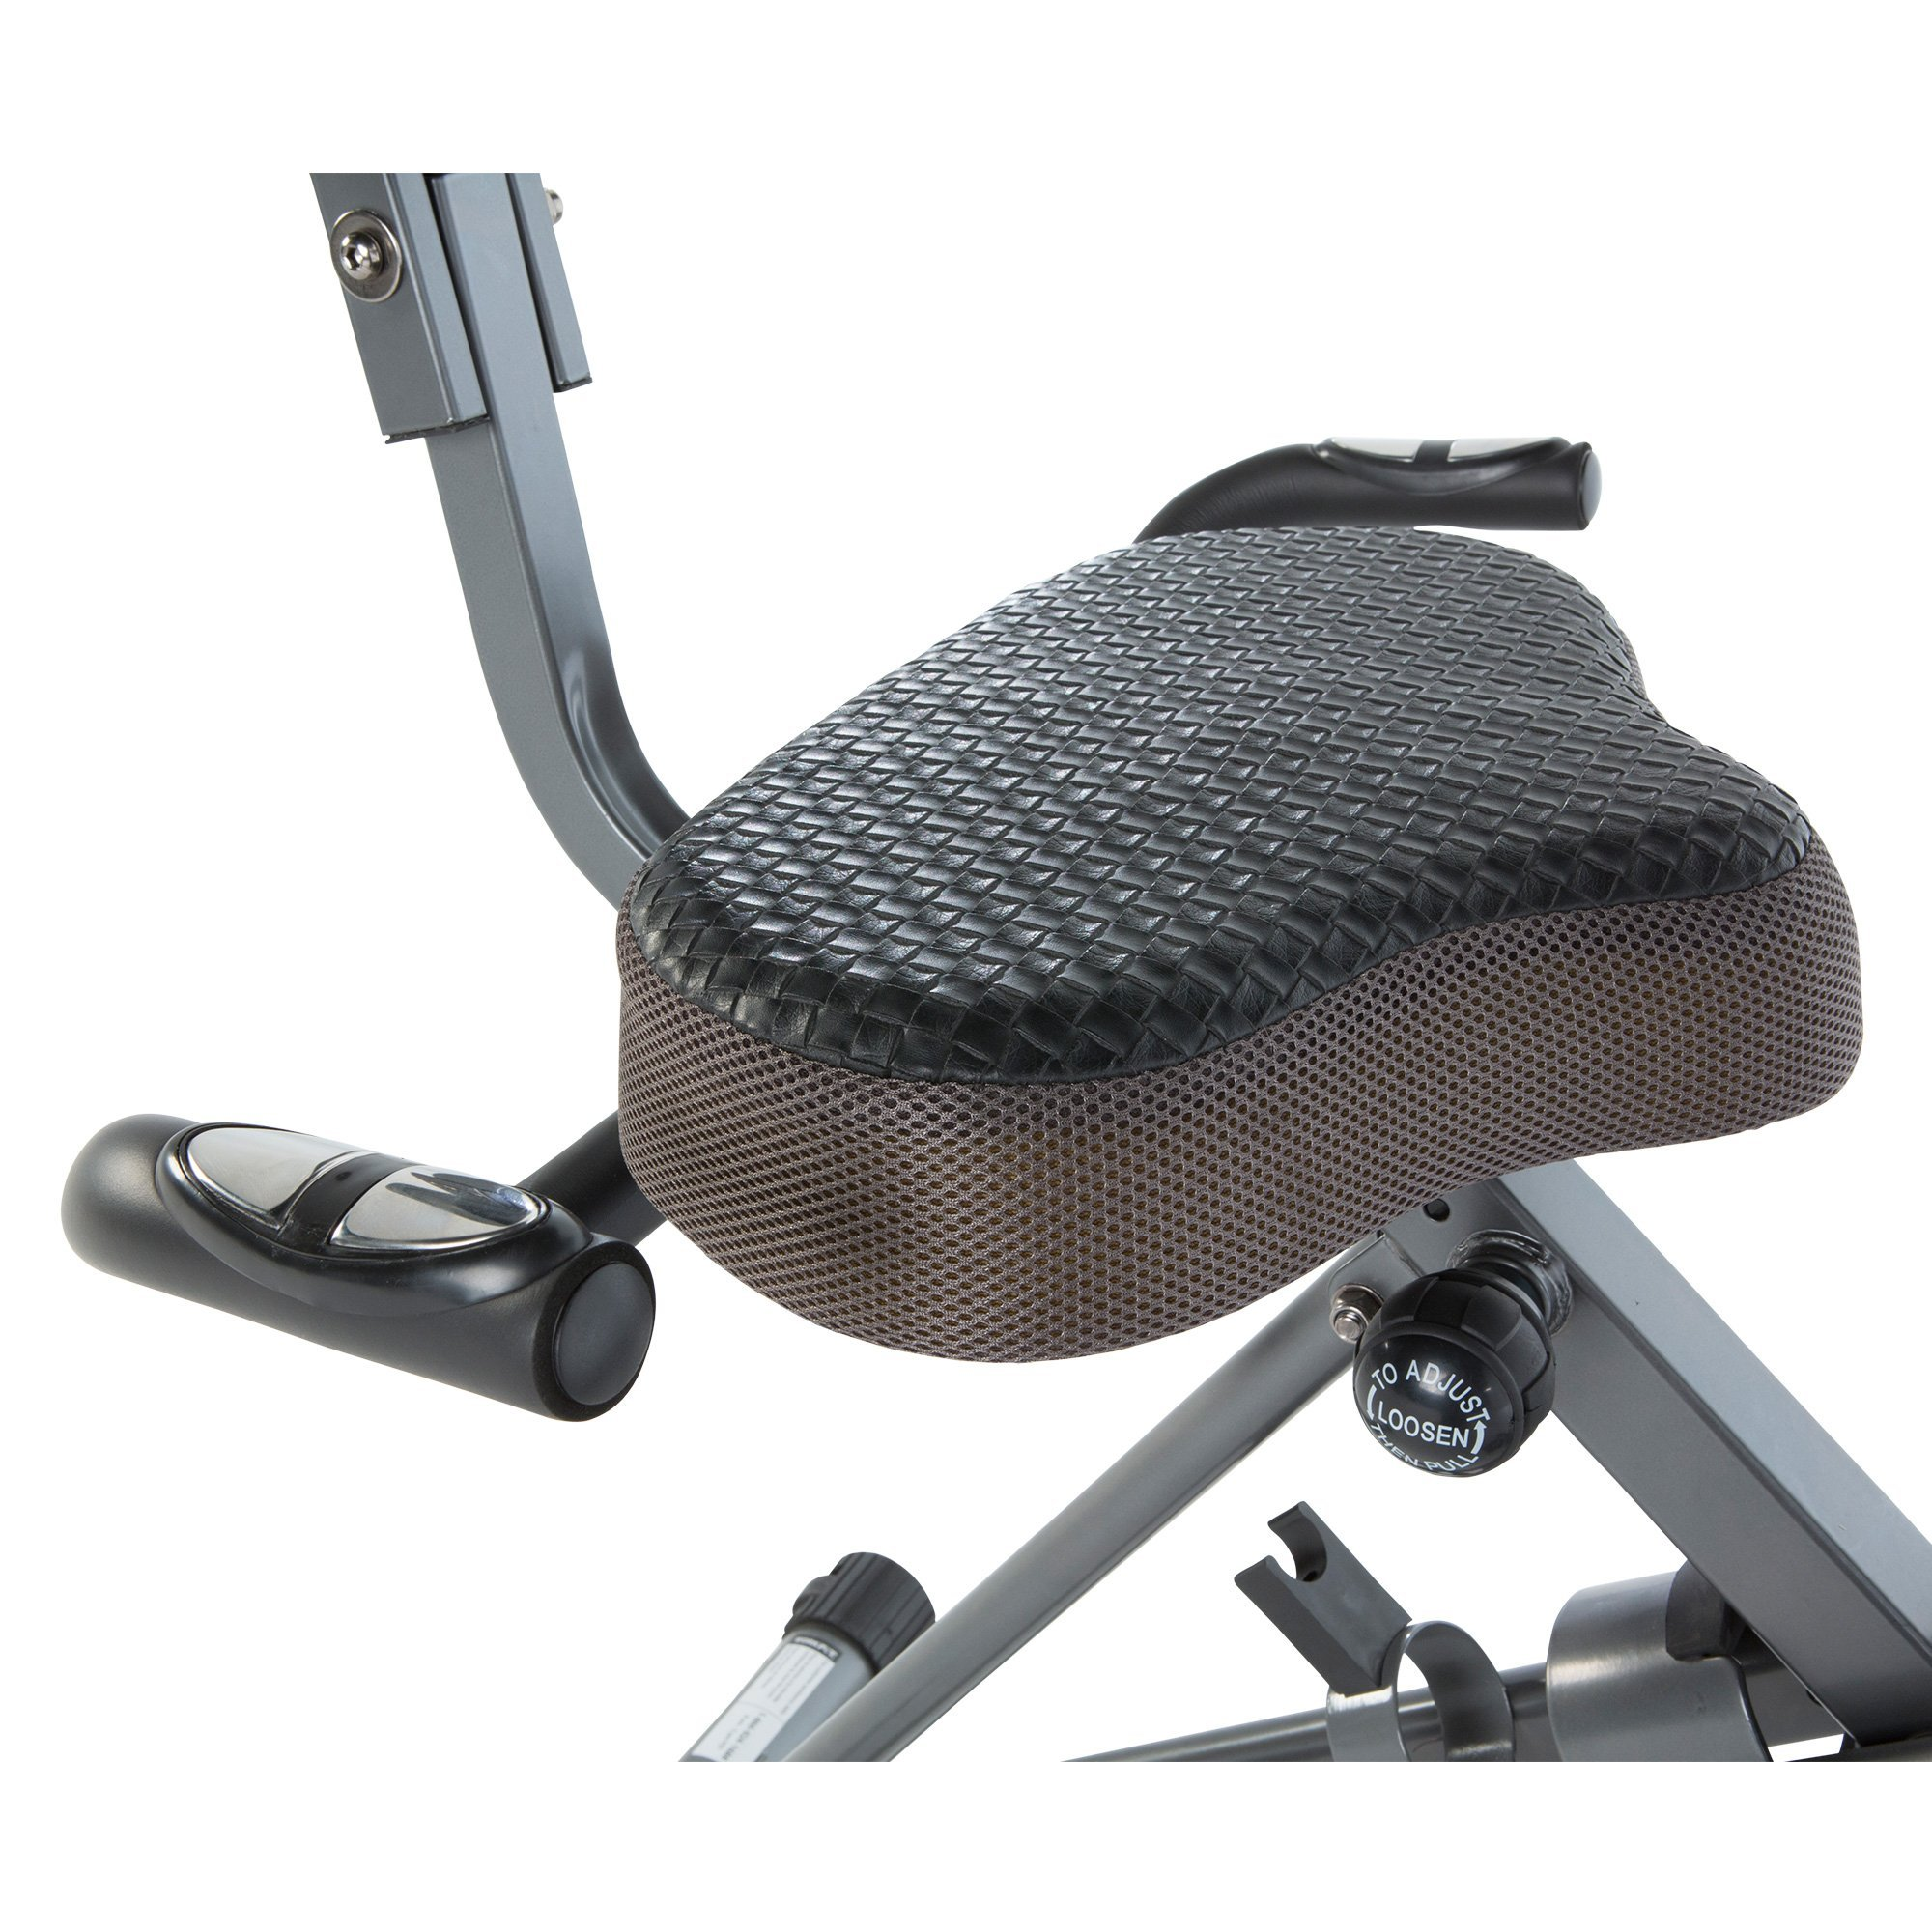 Exerpeutic ExerWorK 1000 Fully Adjustable Desk Folding Exercise Bike with Pulse by Exerpeutic (Image #5)